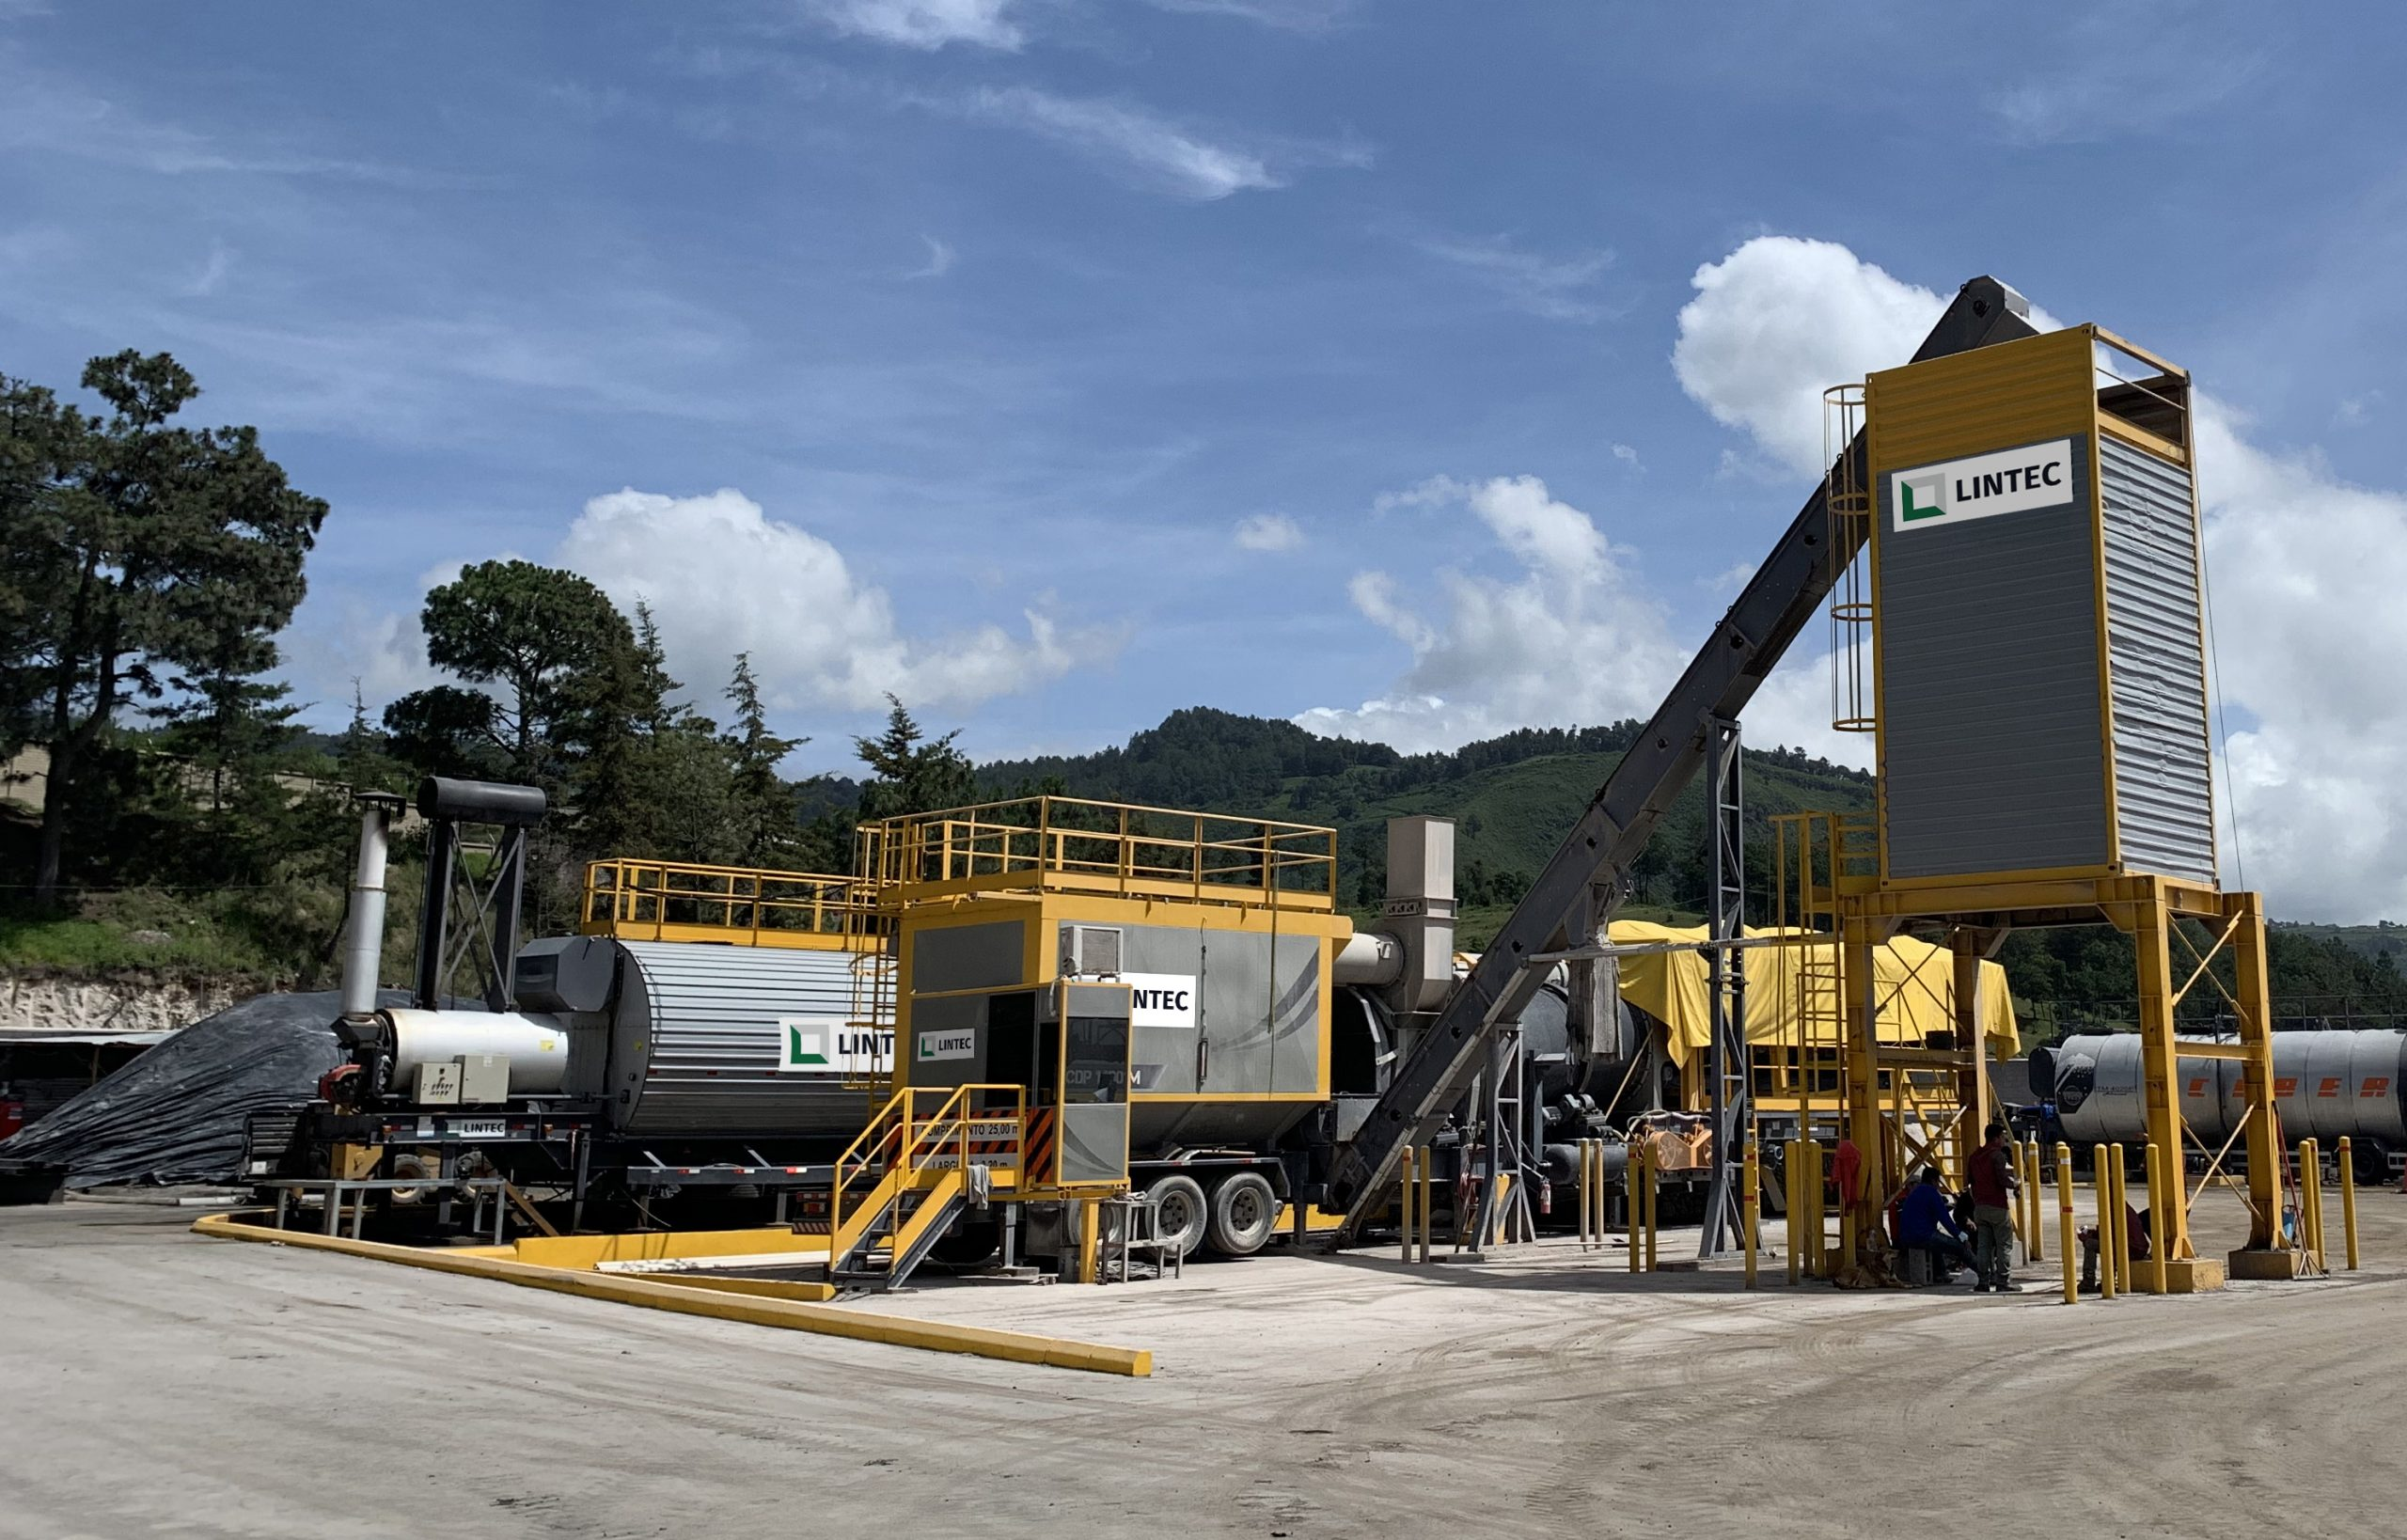 Second Lintec asphalt mixing plant delivered to Aspetro in Guatemala